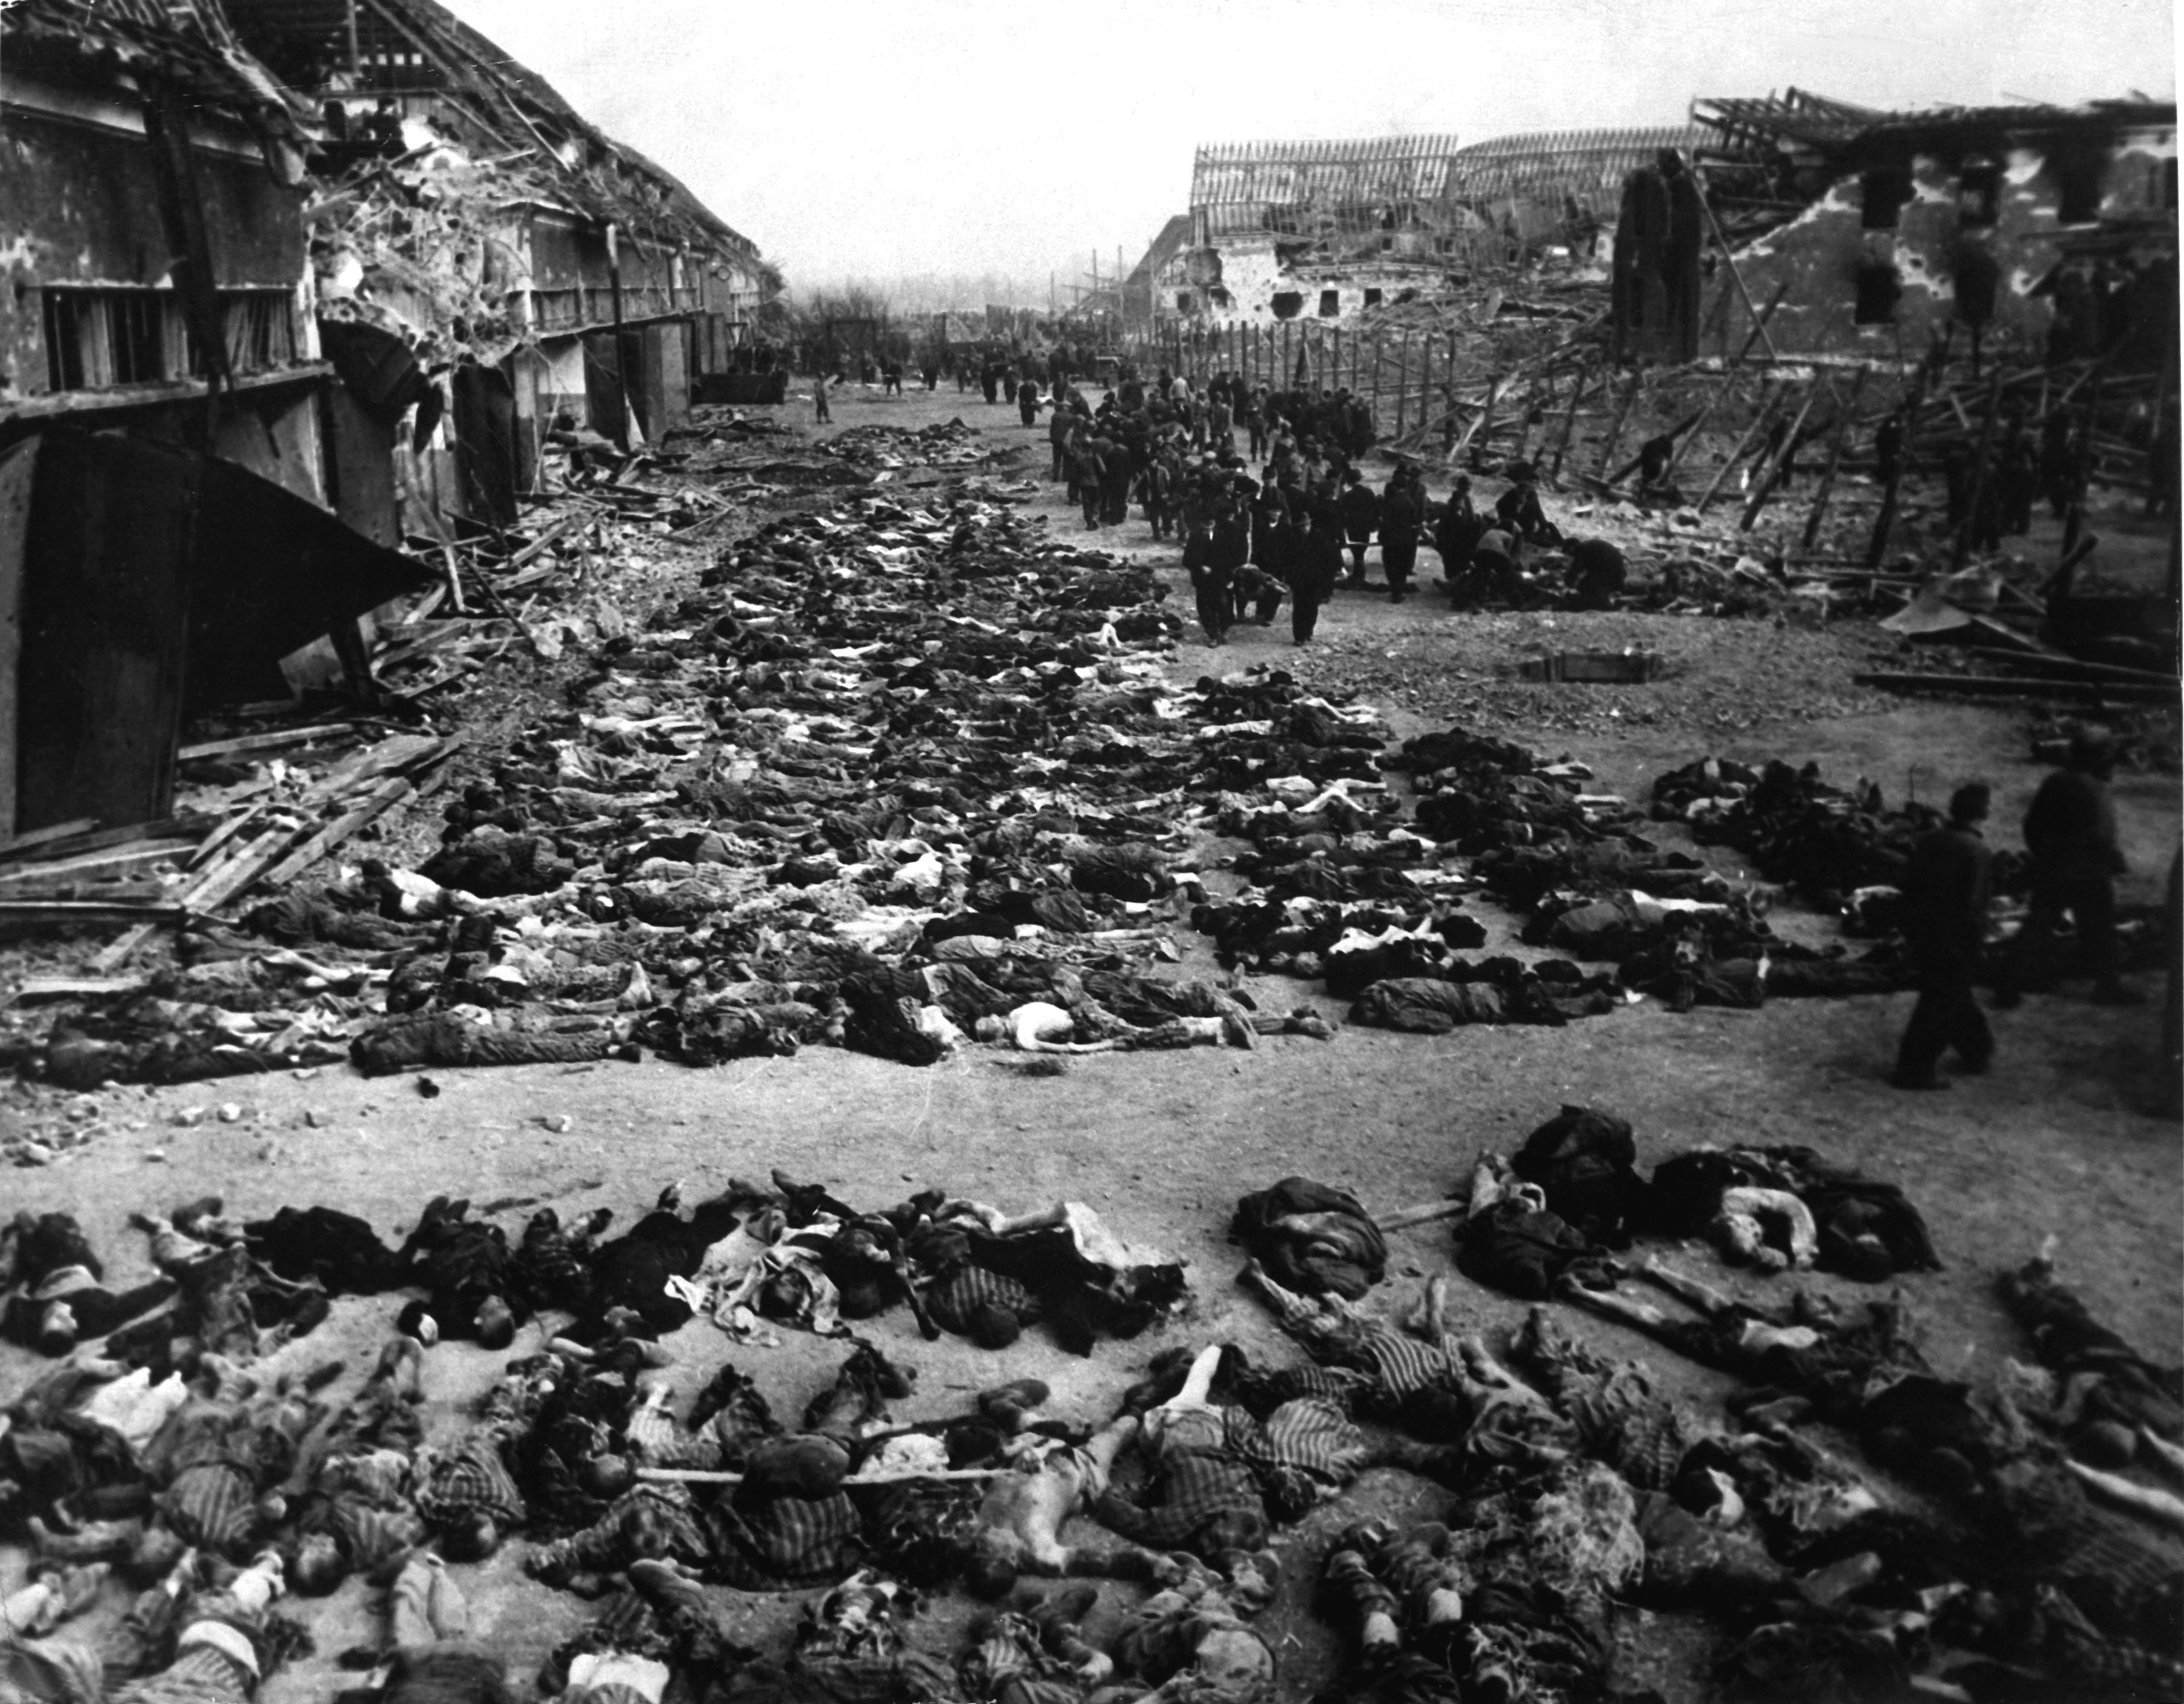 Corpses at Concentration Camp